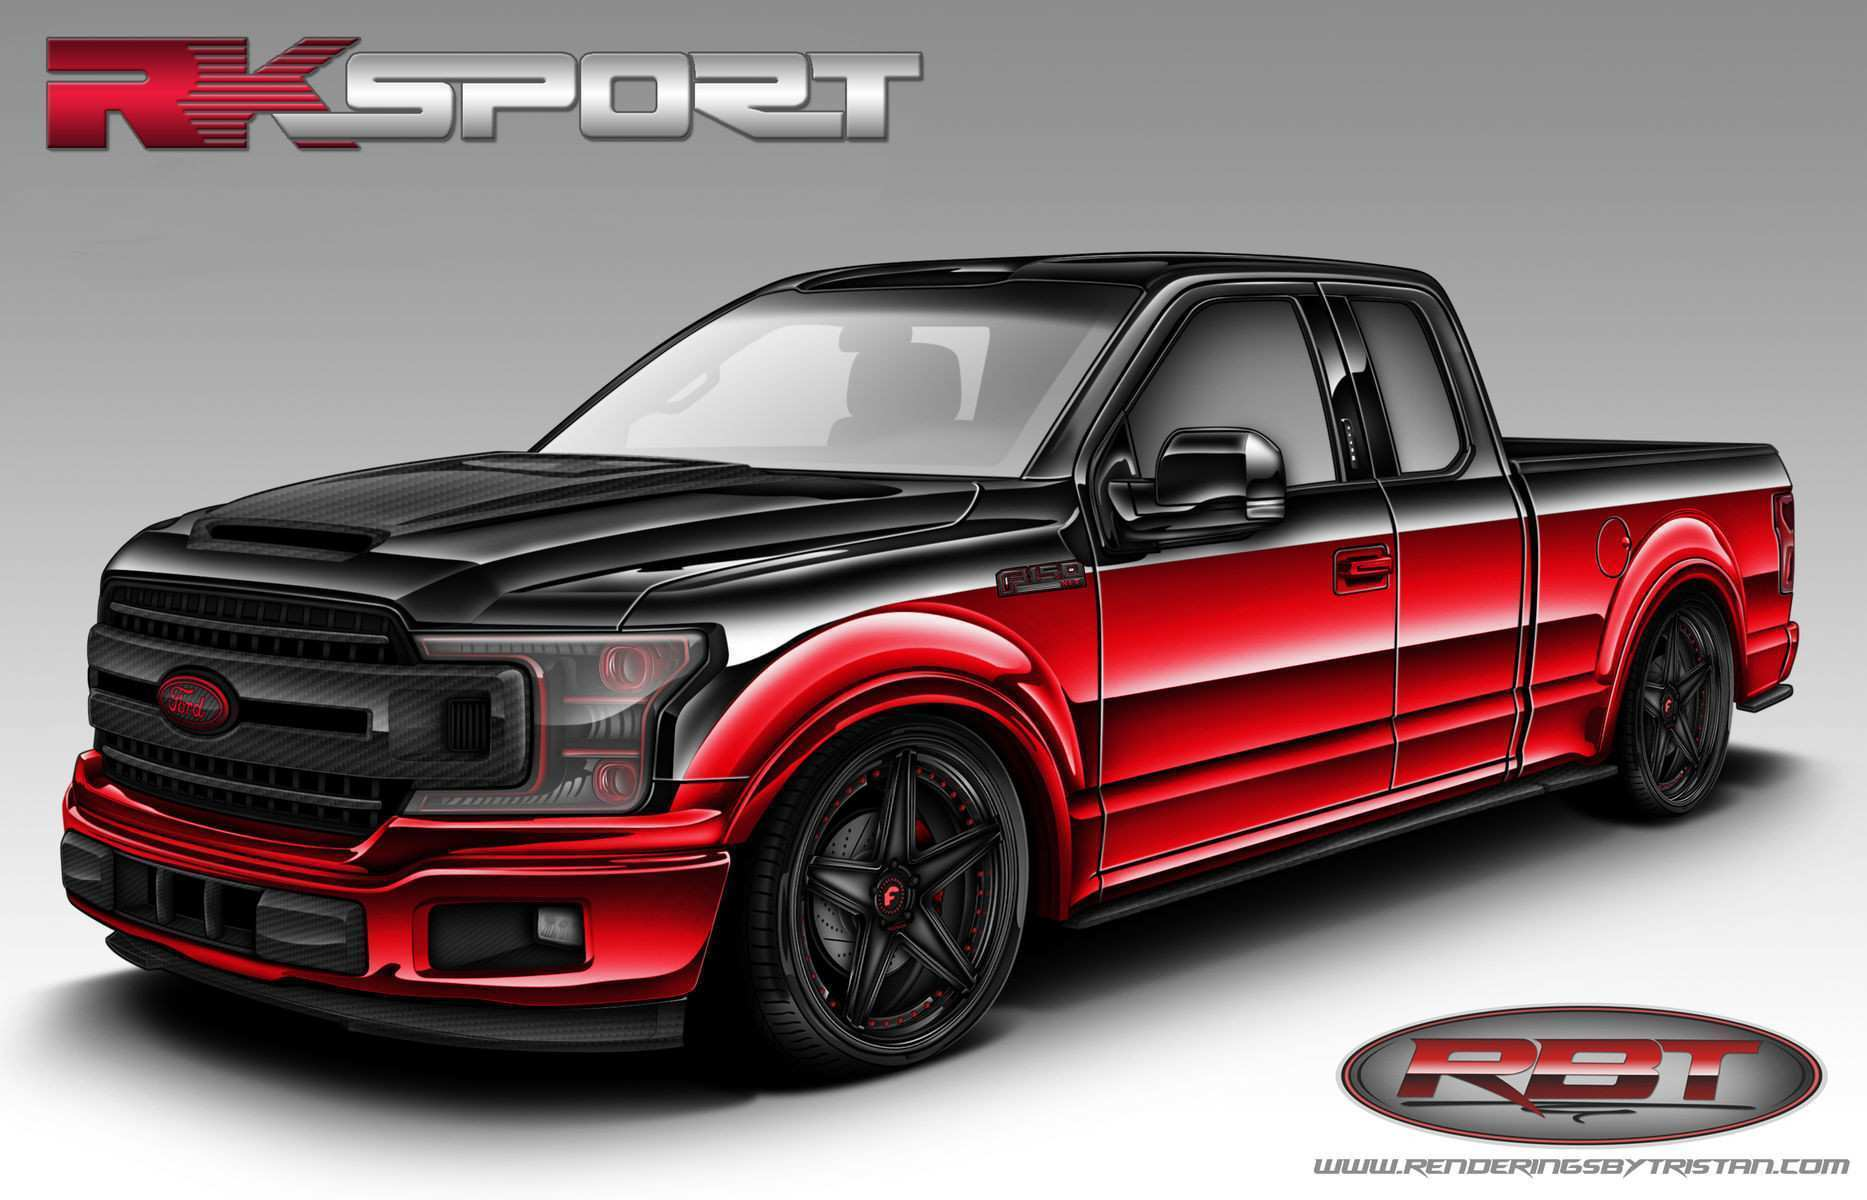 89 All New 2019 Ford Raptor 7 0L Pricing with 2019 Ford Raptor 7 0L